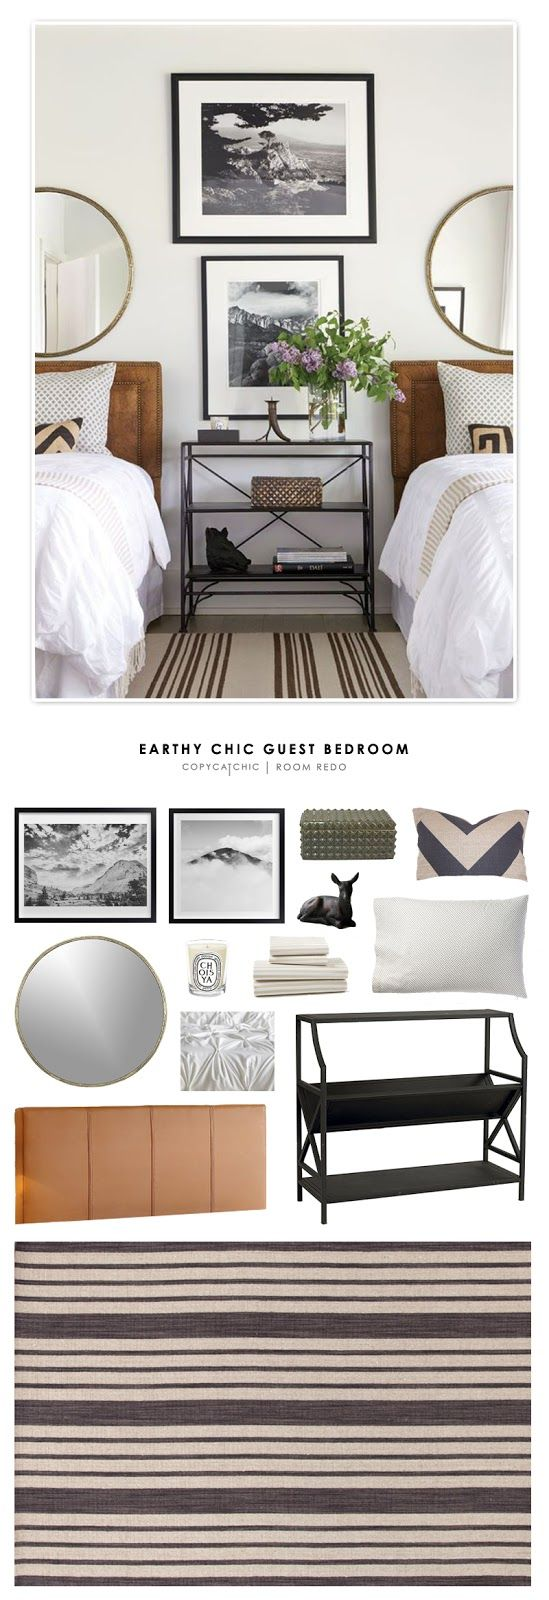 An earthy chic guest bedroom designed by Andrew Brown and recreated for less by Copy Cat Chic. by @audreycdyer